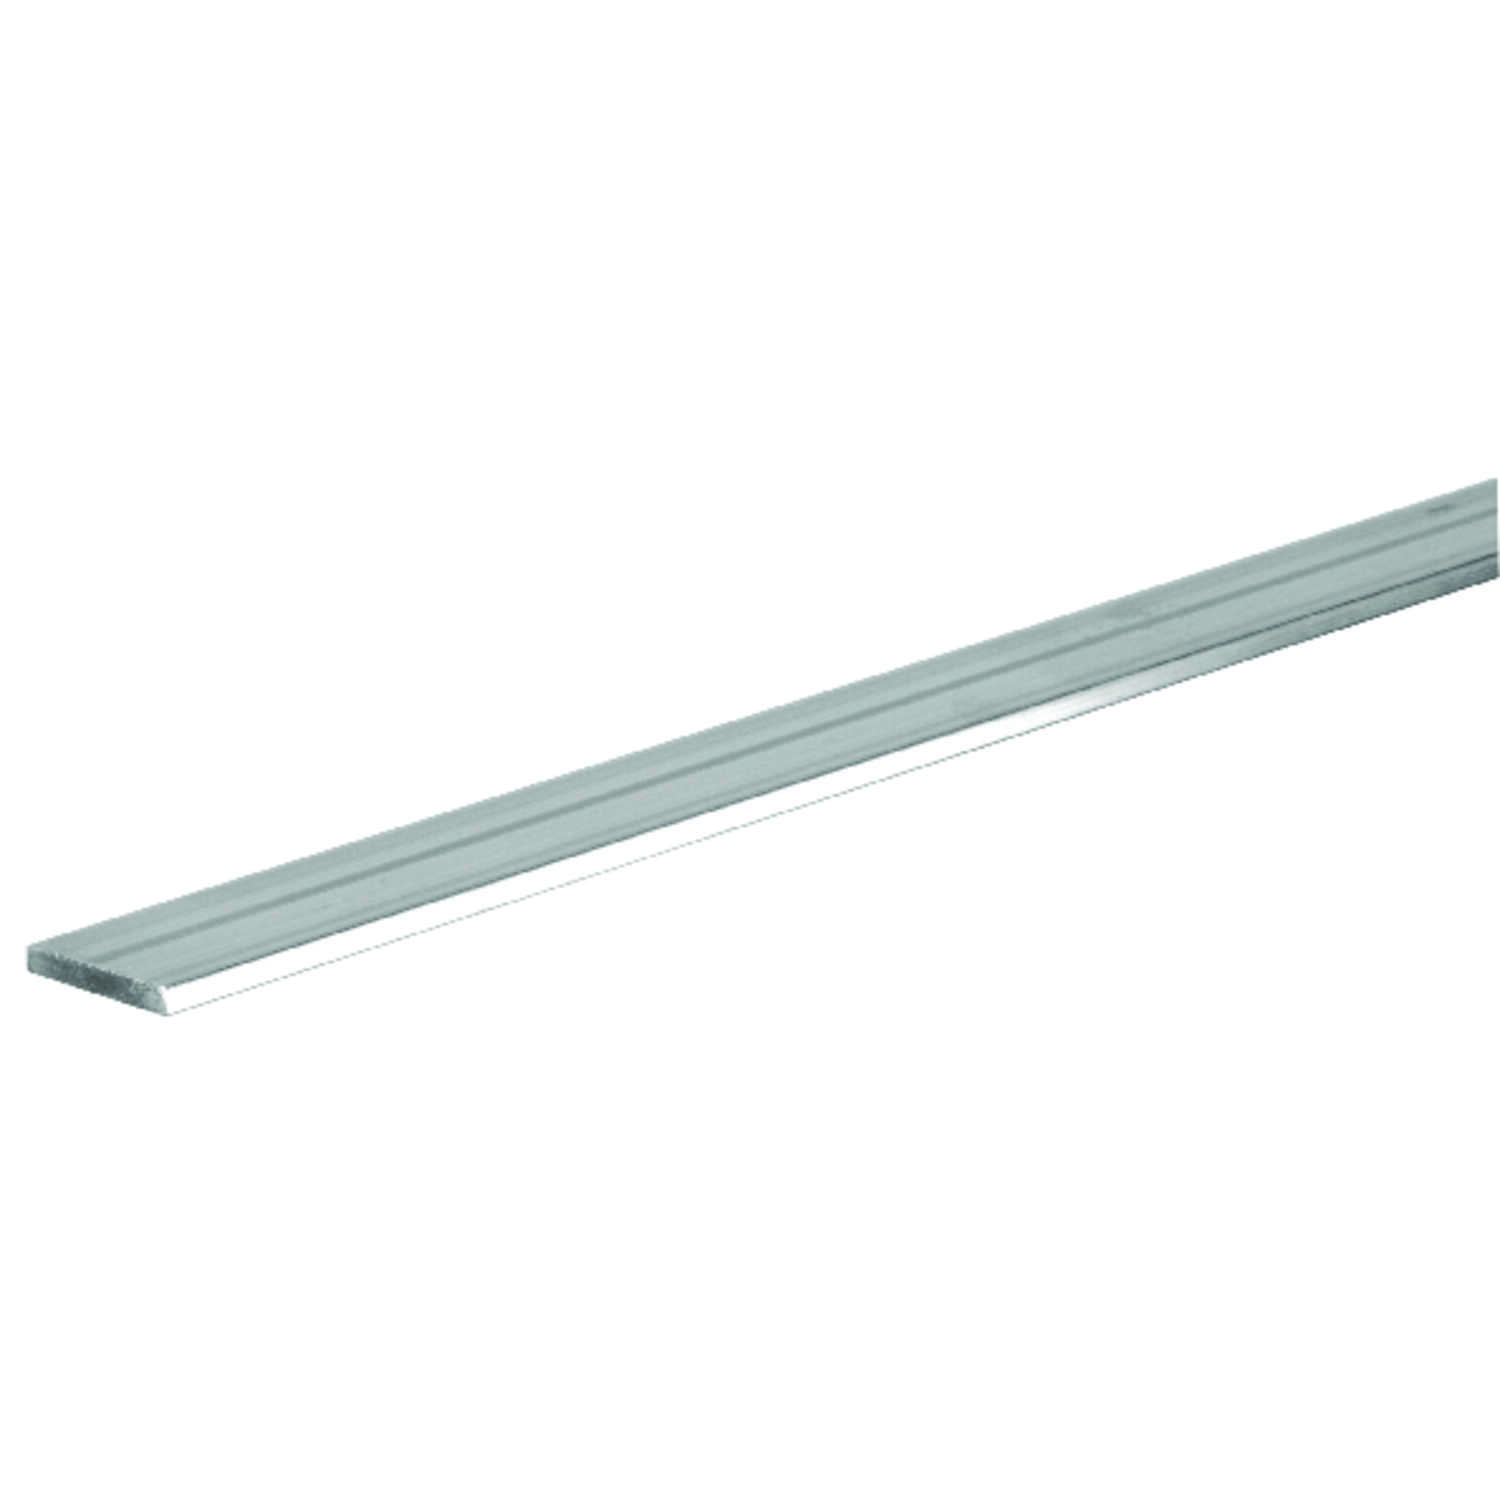 Boltmaster  0.25 in.  x 1 in. W x 6 ft. L Weldable Aluminum Flat Bar  5 pk